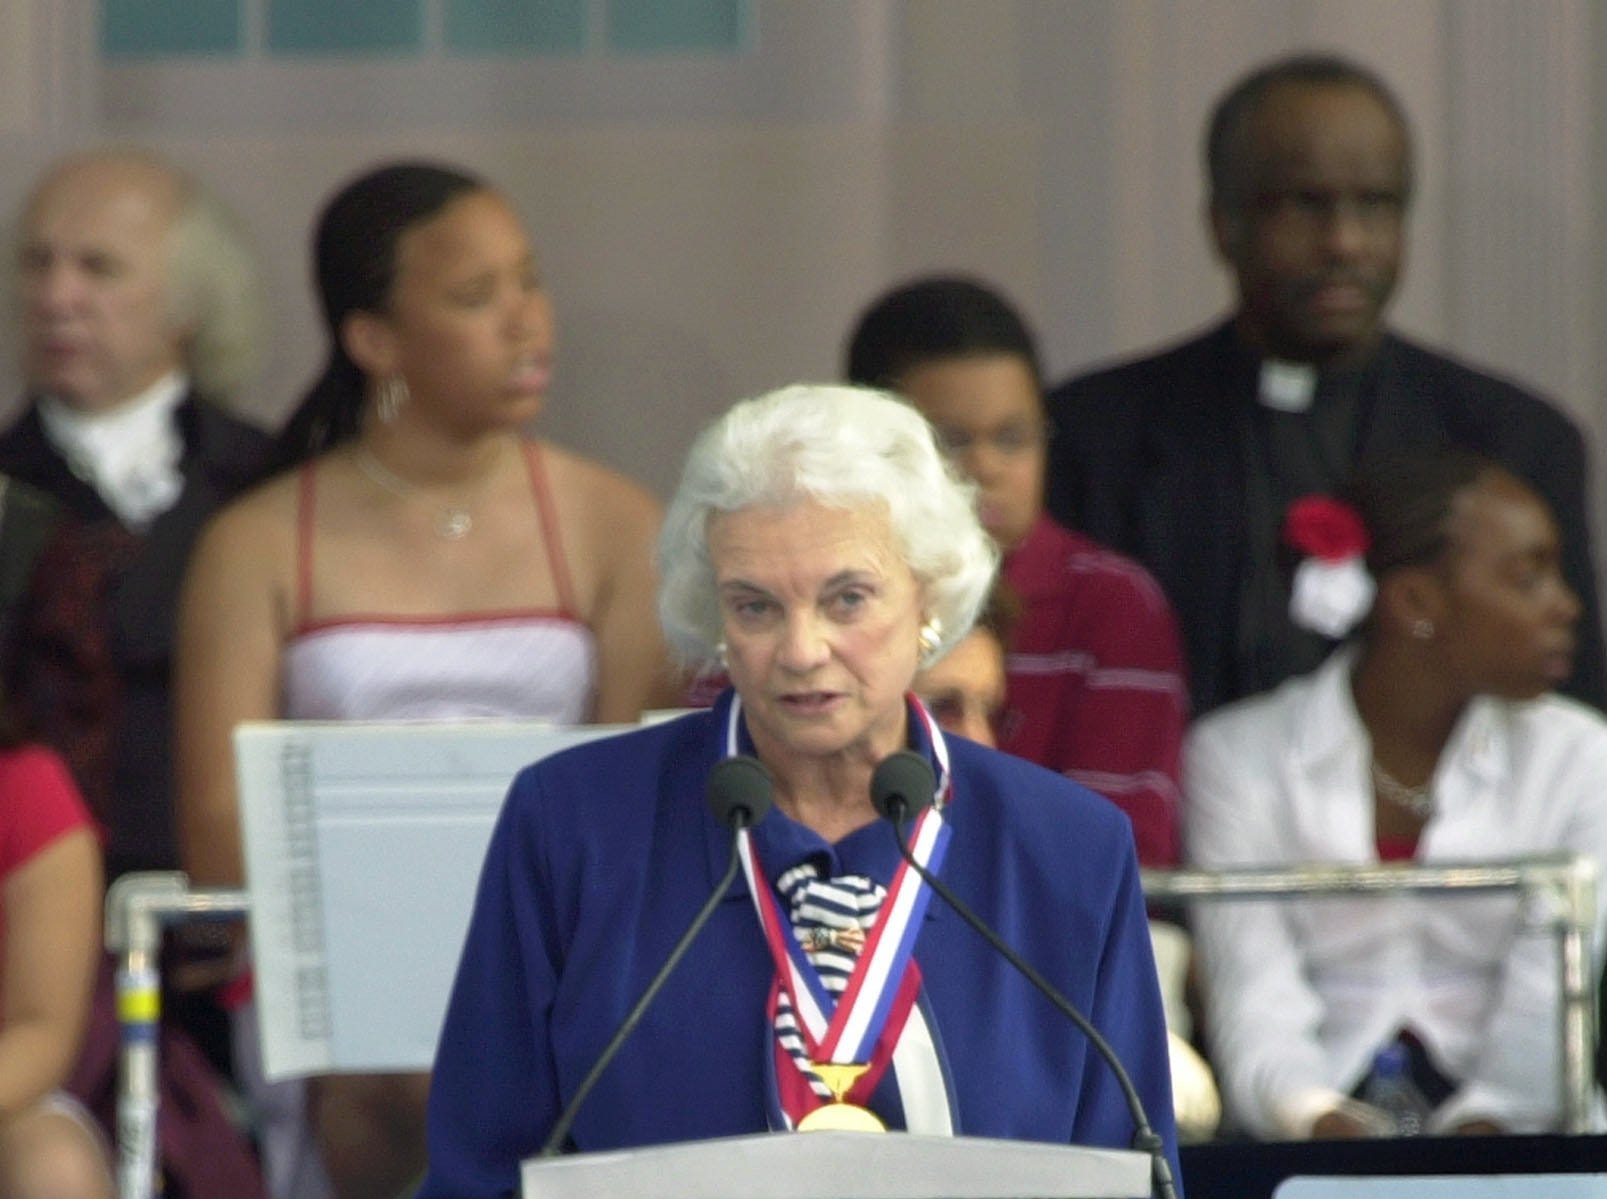 Supreme Court Justice Sandra Day O'Connor speaks after receiving the Liberty Medal in Philadelphia, Friday, July 4, 2003.  The award honors individuals whose actions represent the founding principles of the United States.